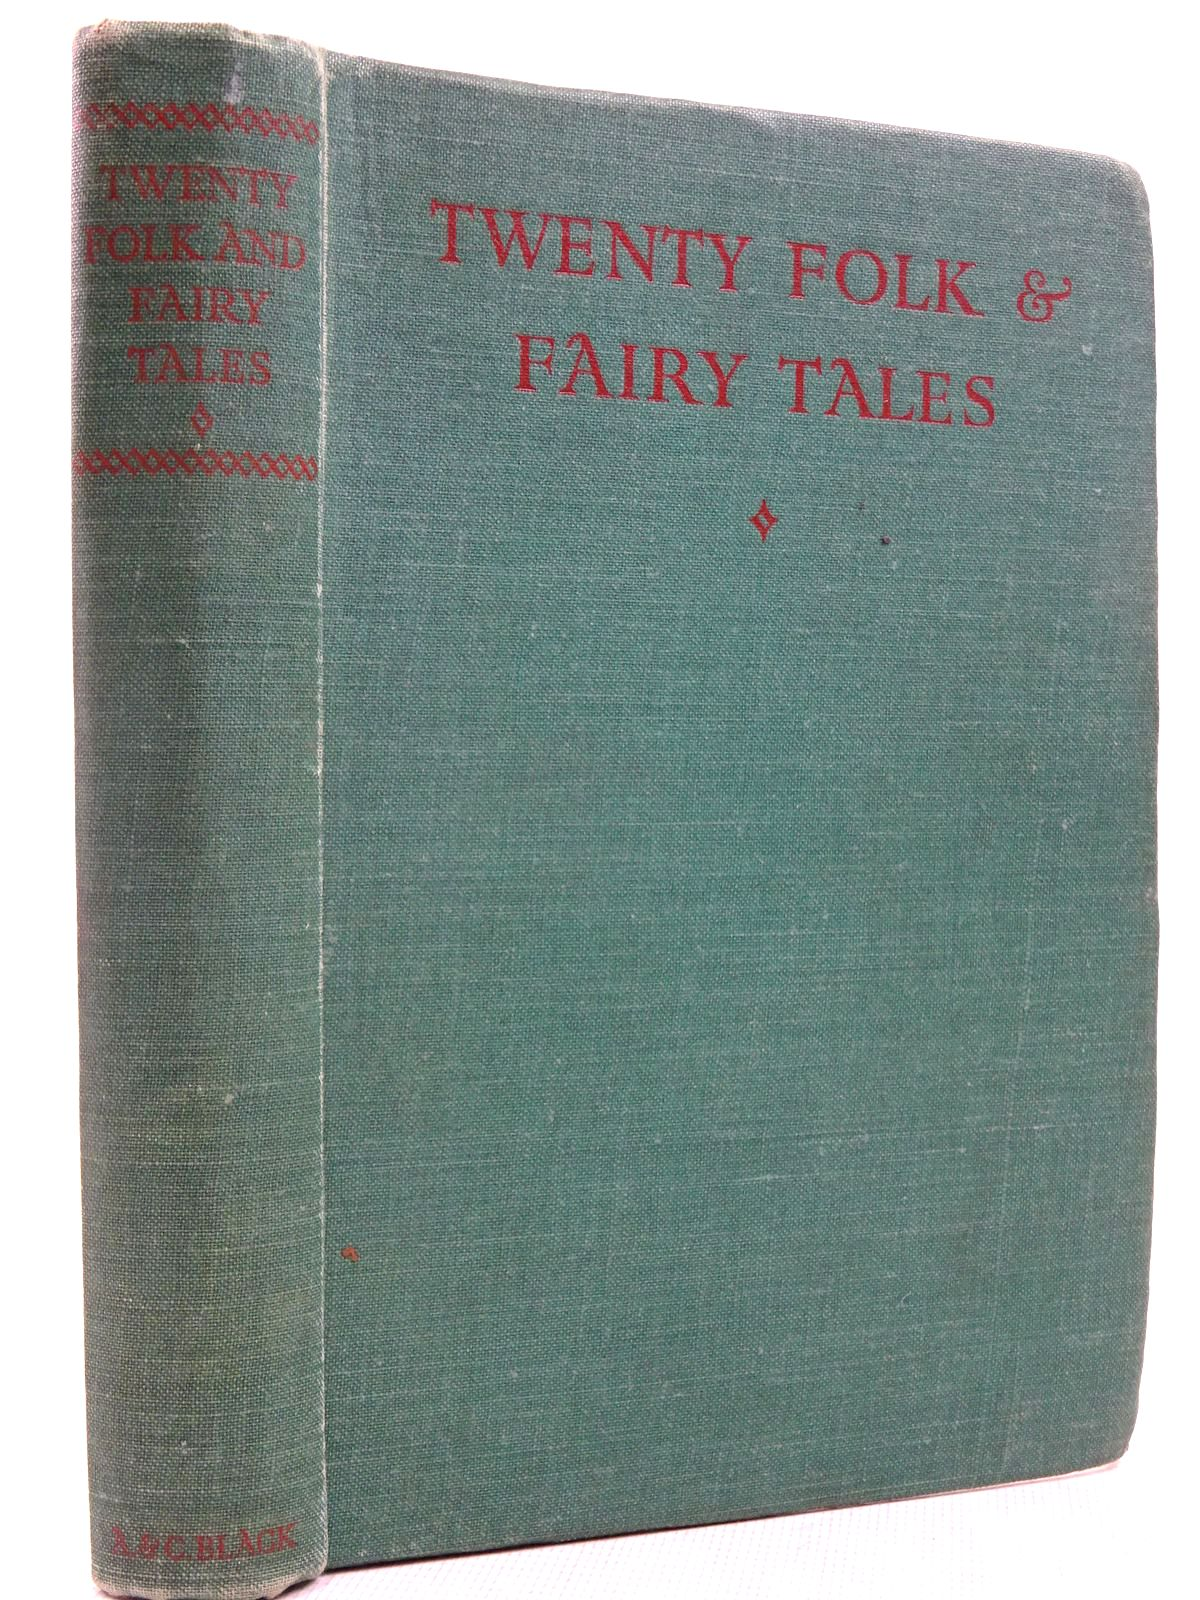 Photo of TWENTY FOLK AND FAIRY TALES FROM EAST TO WEST illustrated by Folkard, Charles published by A. & C. Black (STOCK CODE: 2129065)  for sale by Stella & Rose's Books